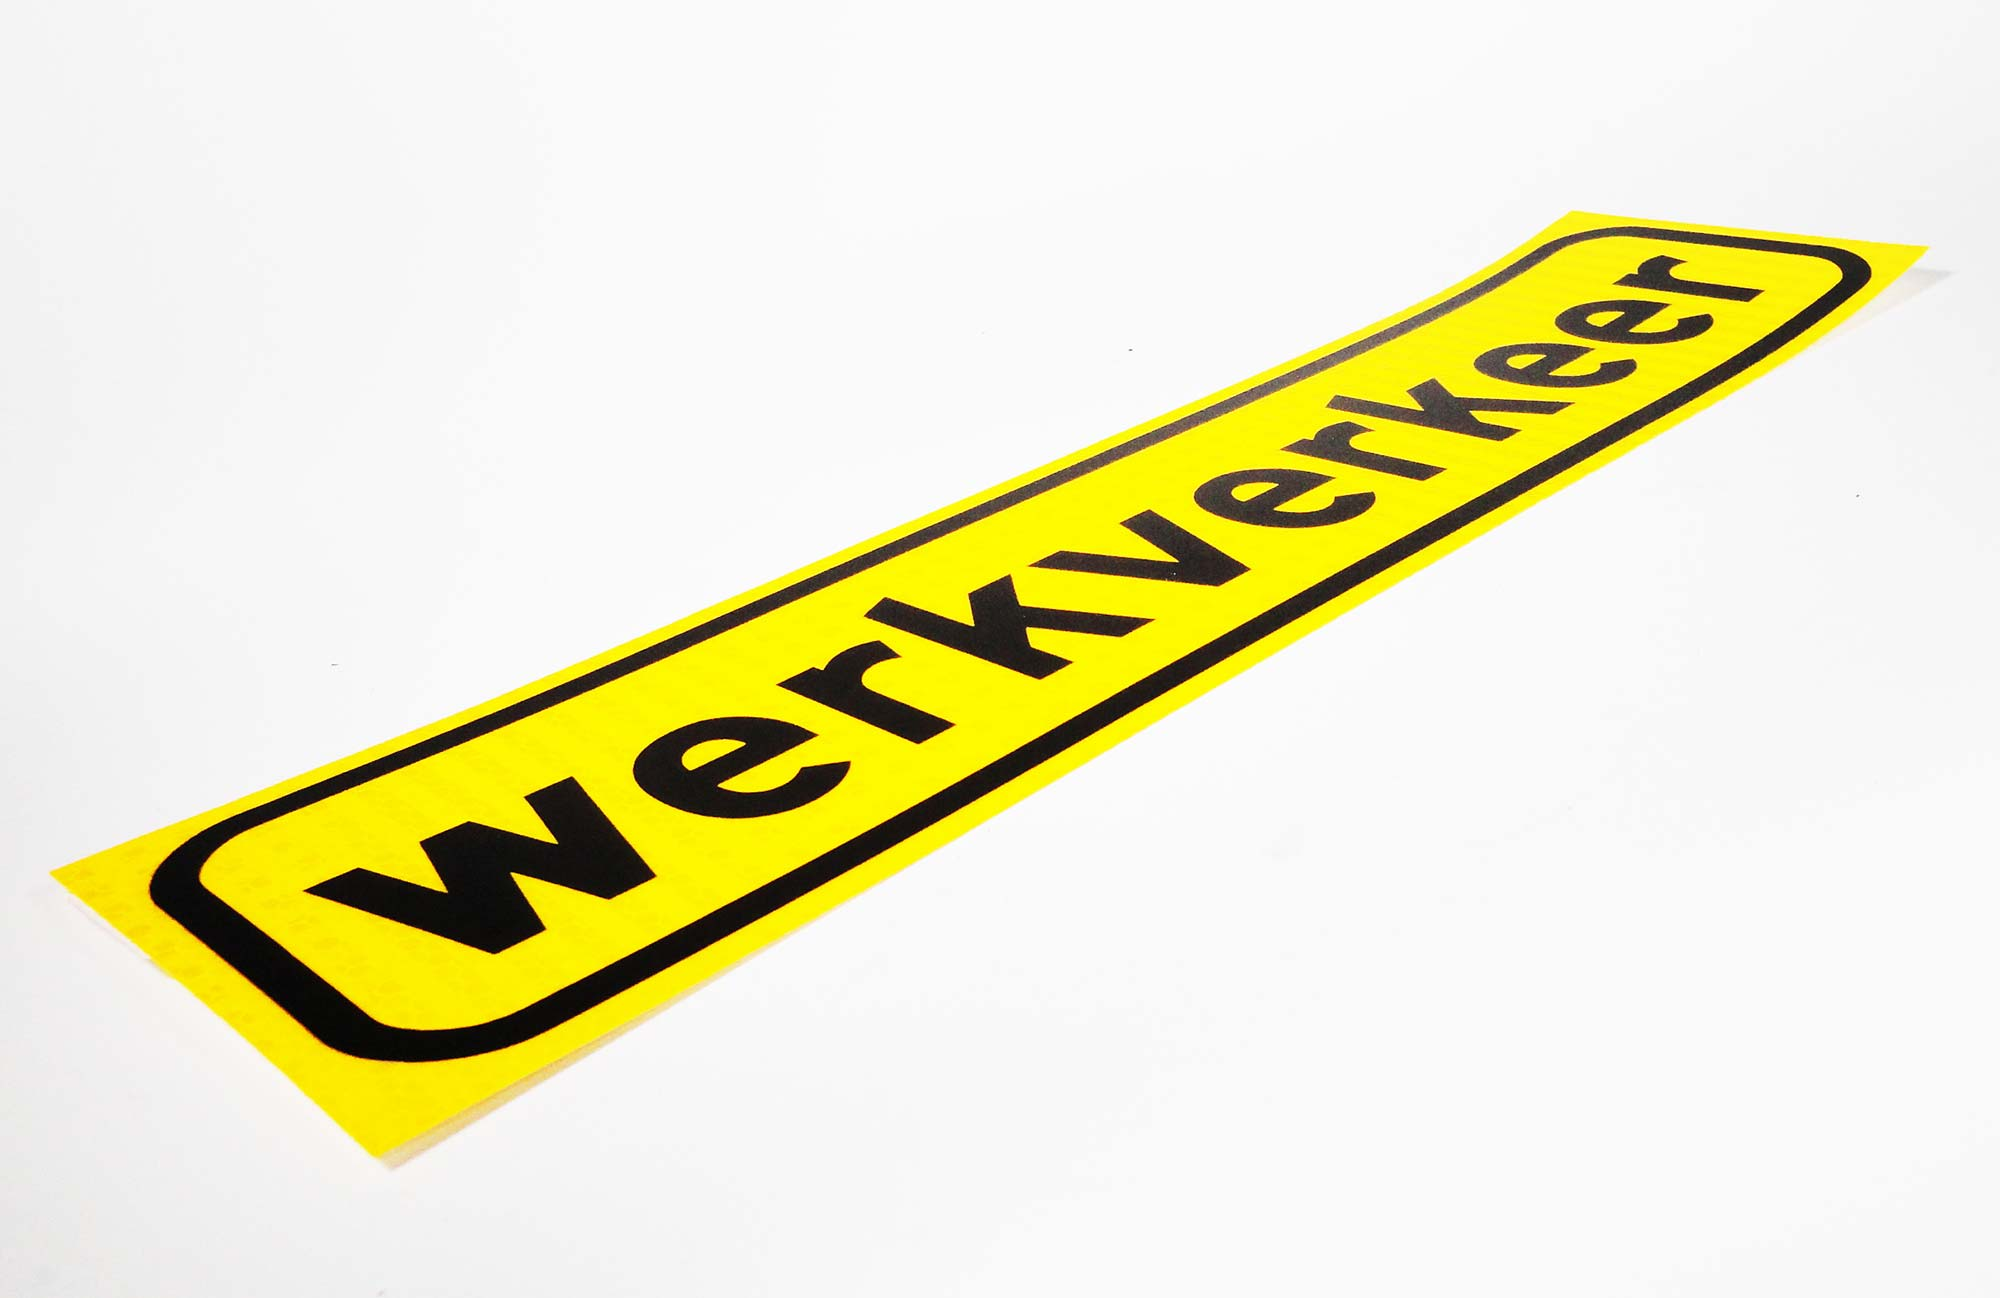 Werkverkeer (sticker)